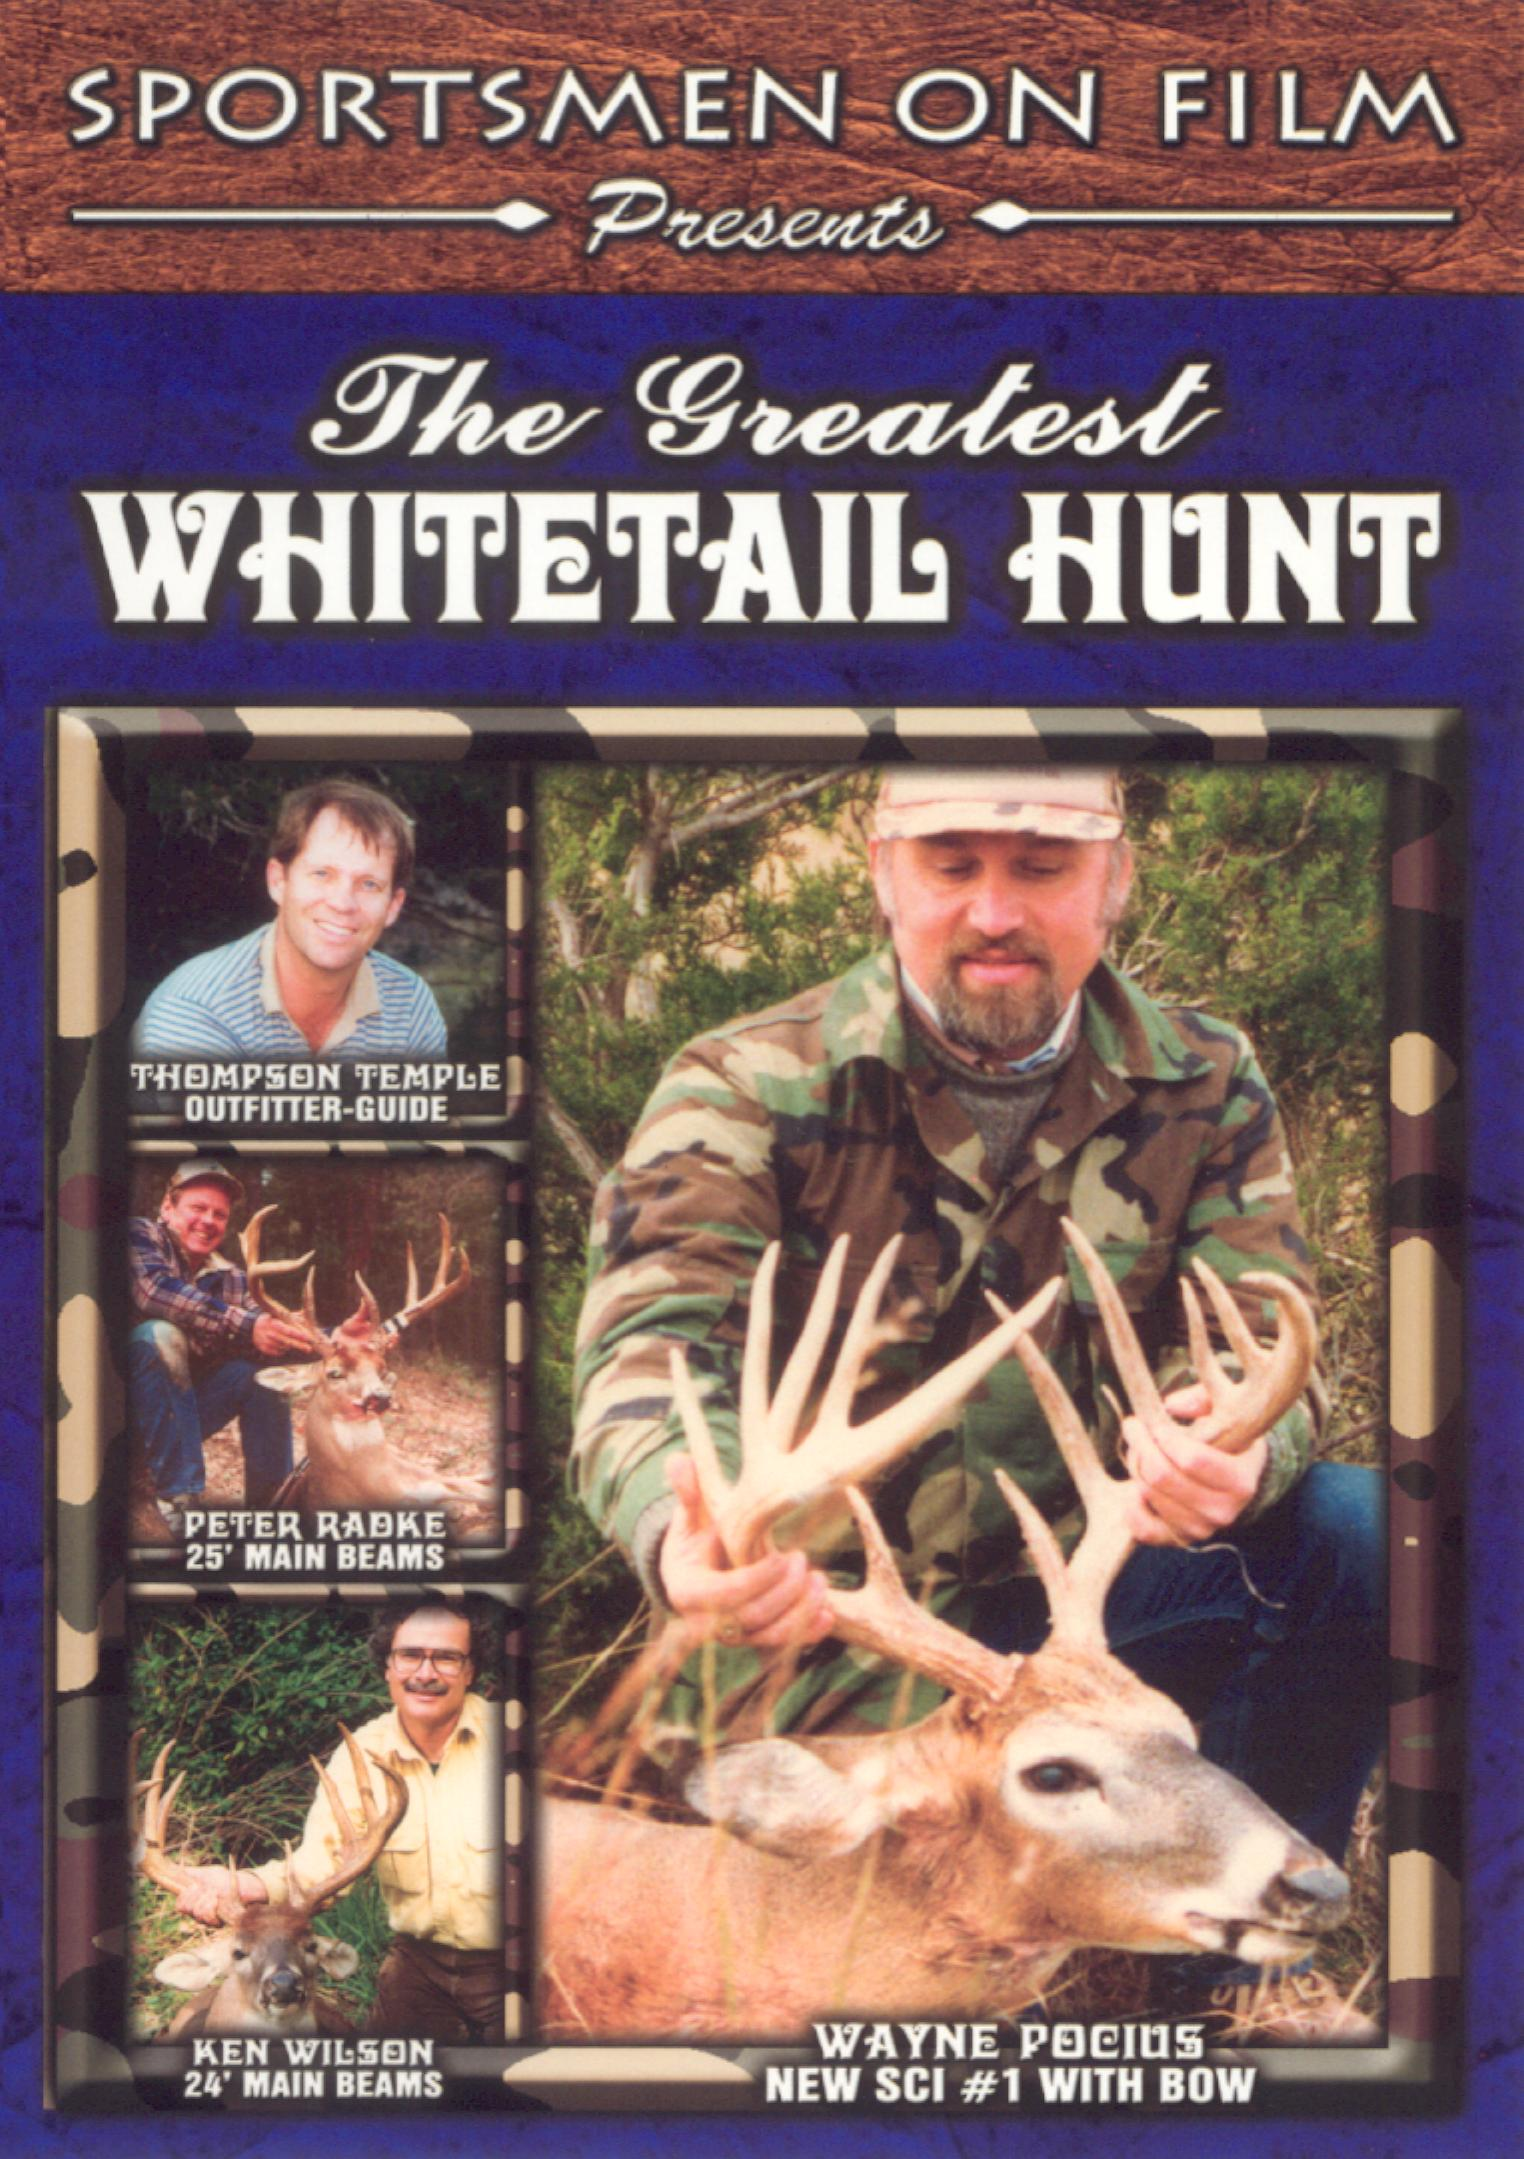 The Greatest Whitetail Hunt